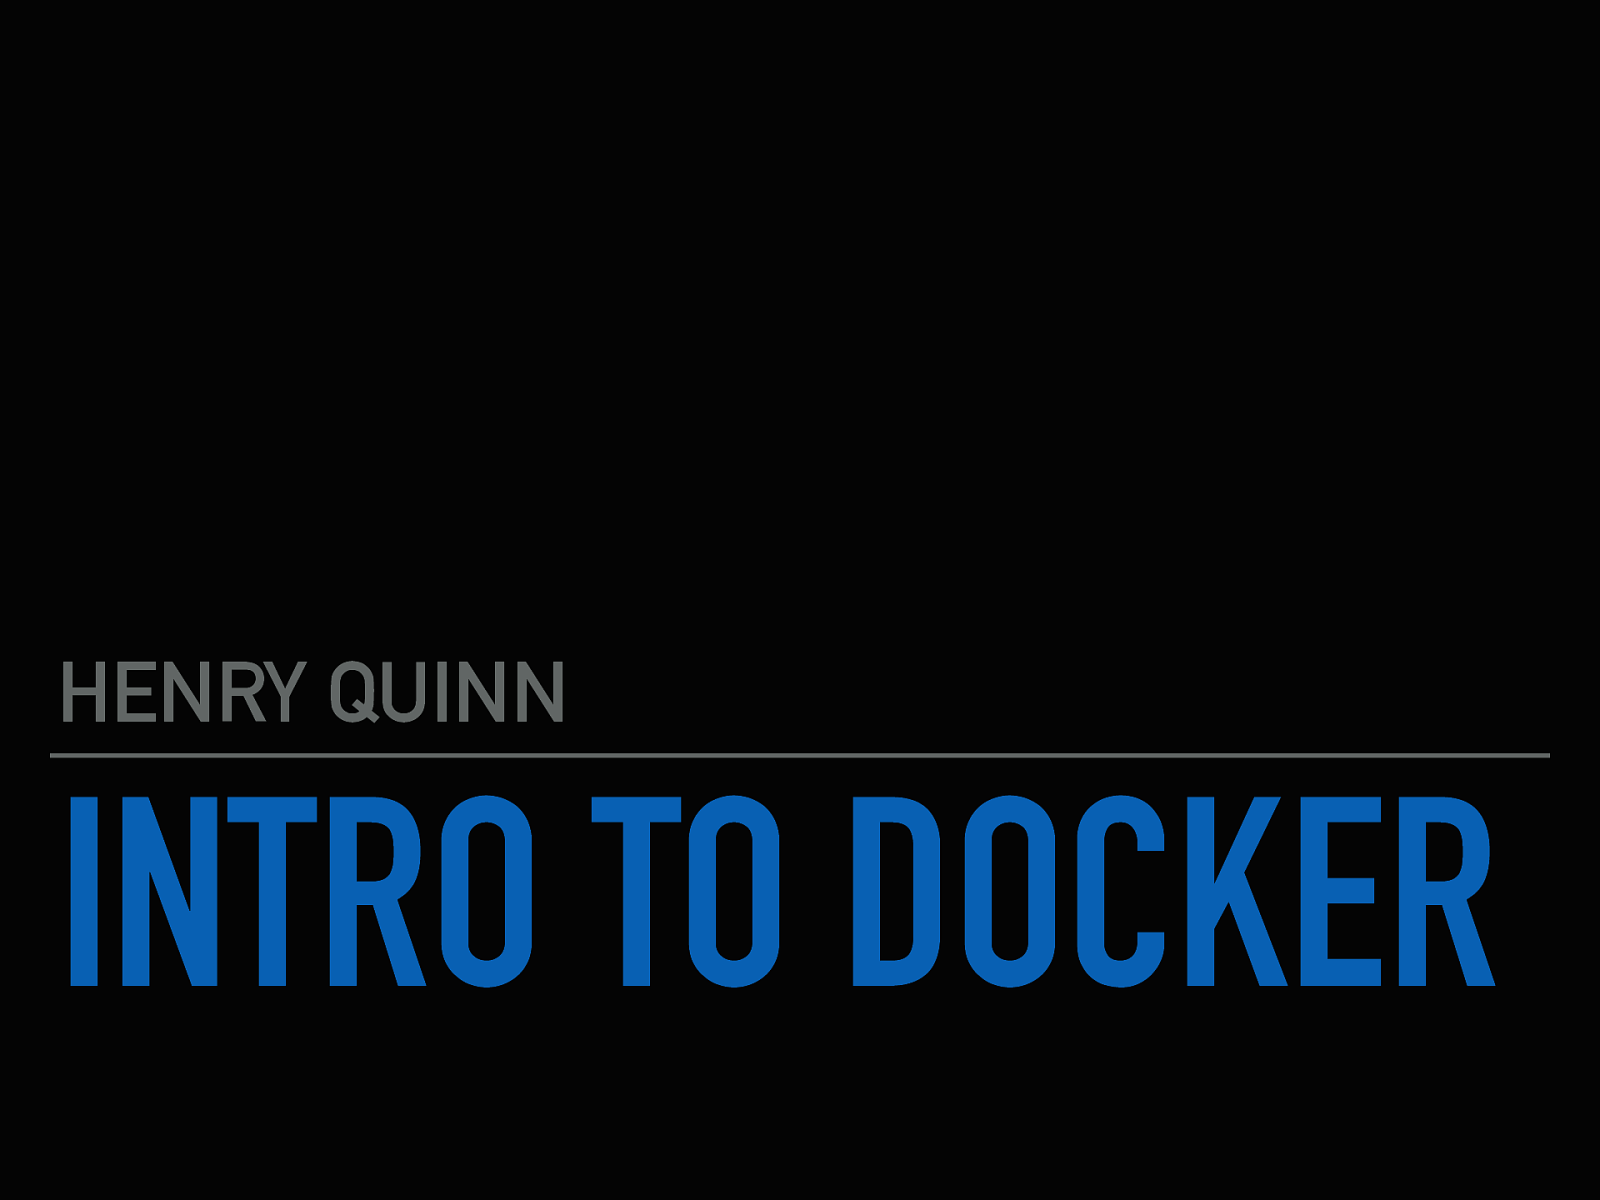 Intro to Docker